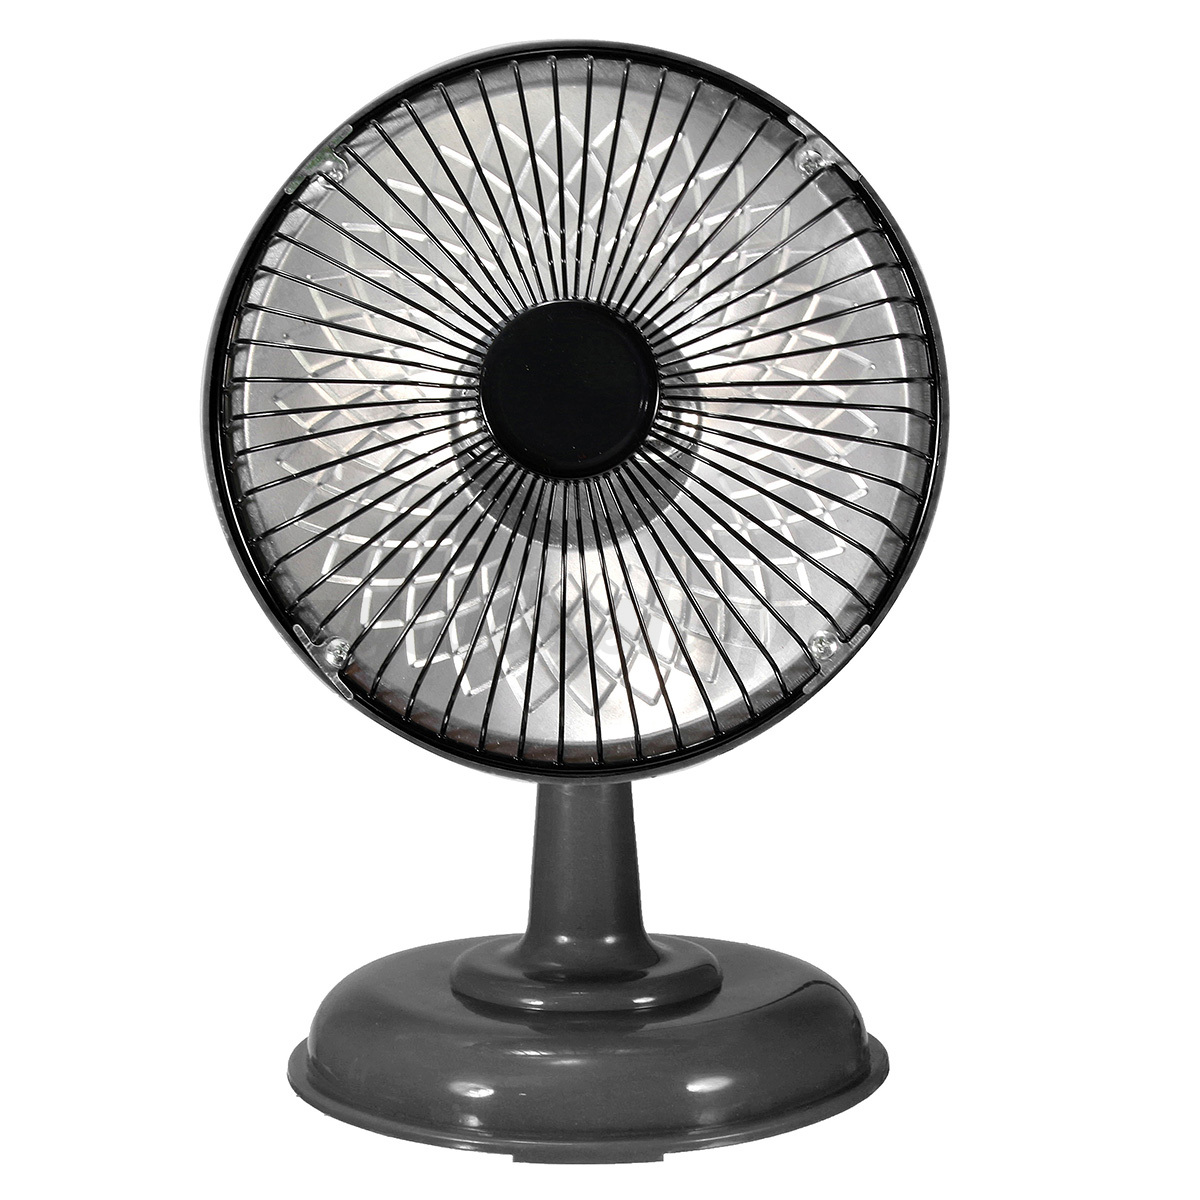 Small Electric Fans For Home : W portable mini desktop winter space heater electric